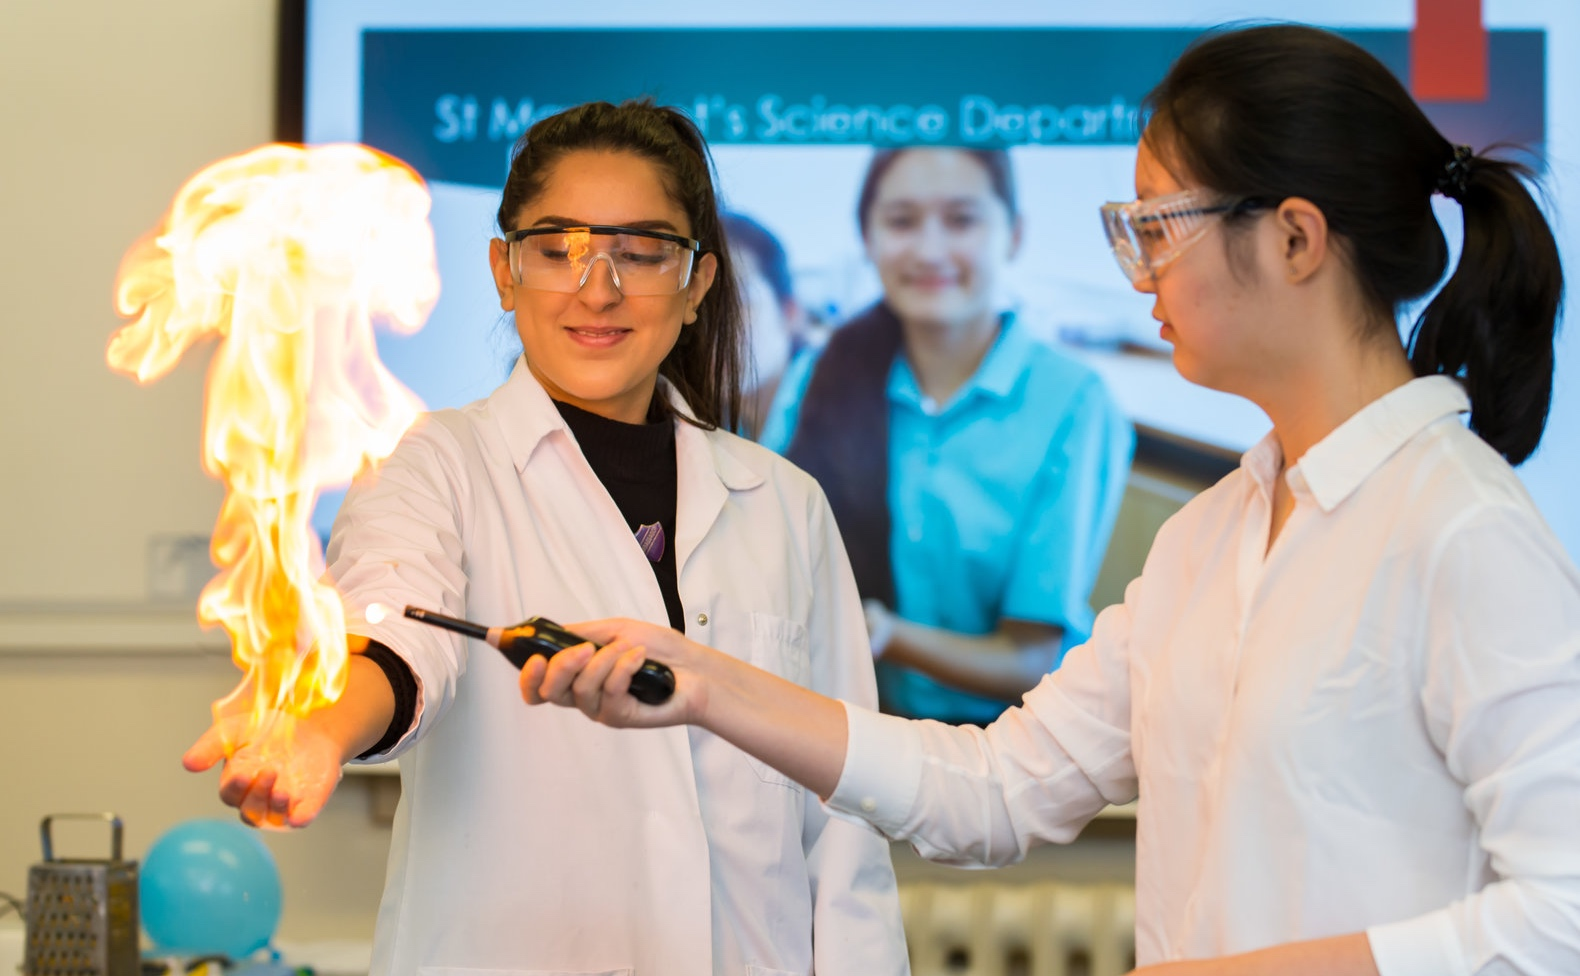 More girls are moving into science-related subjects